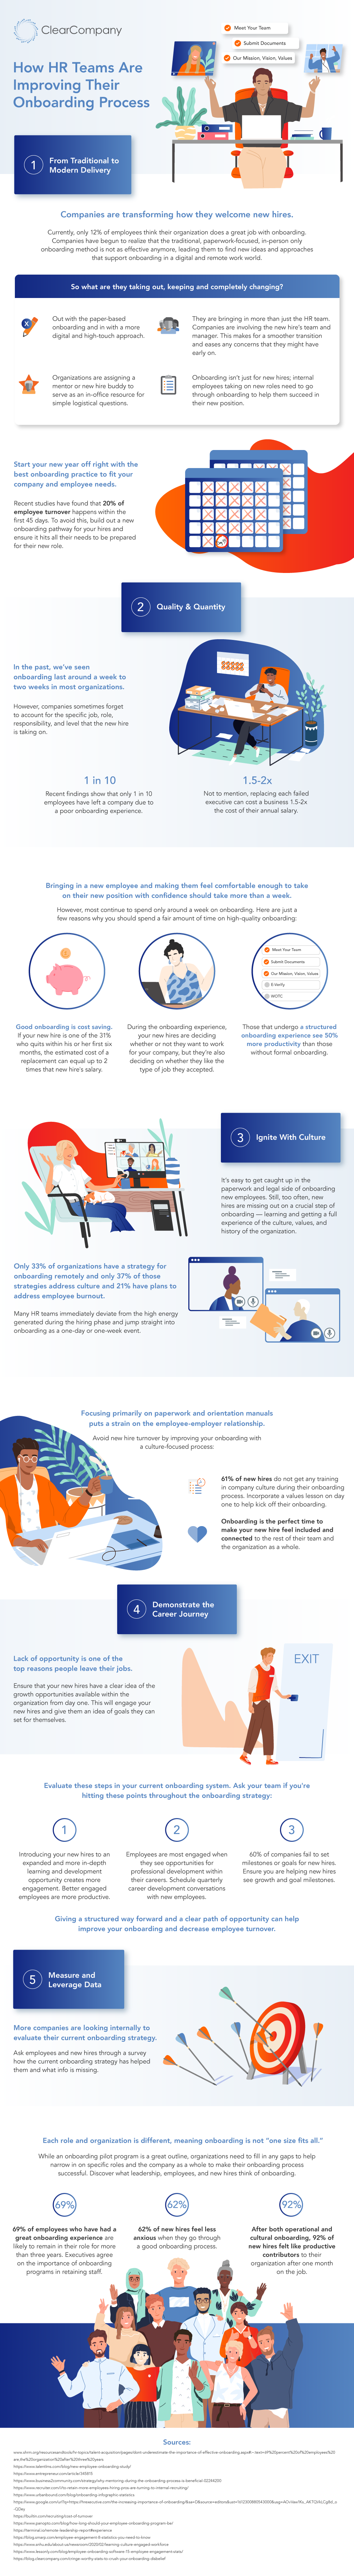 How-HR-Teams-Are-Improving-Their-Onboarding-Infographic